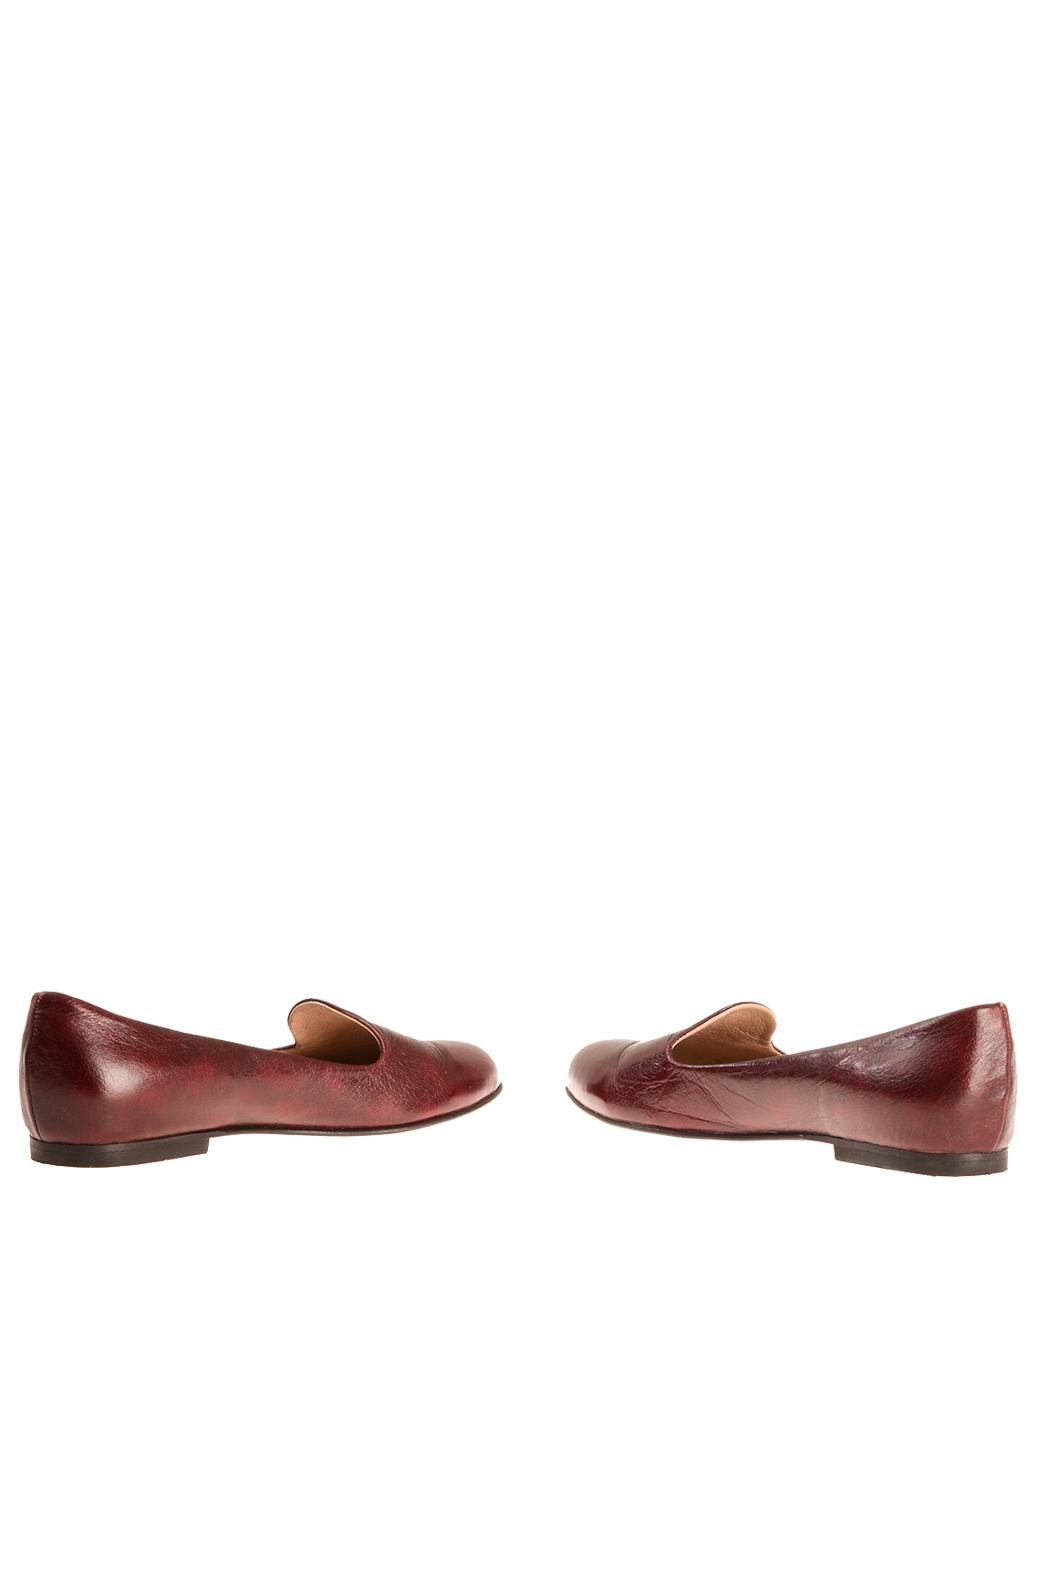 Bottega Bash Bourdeaux Leather Loafers - Side Cropped Image